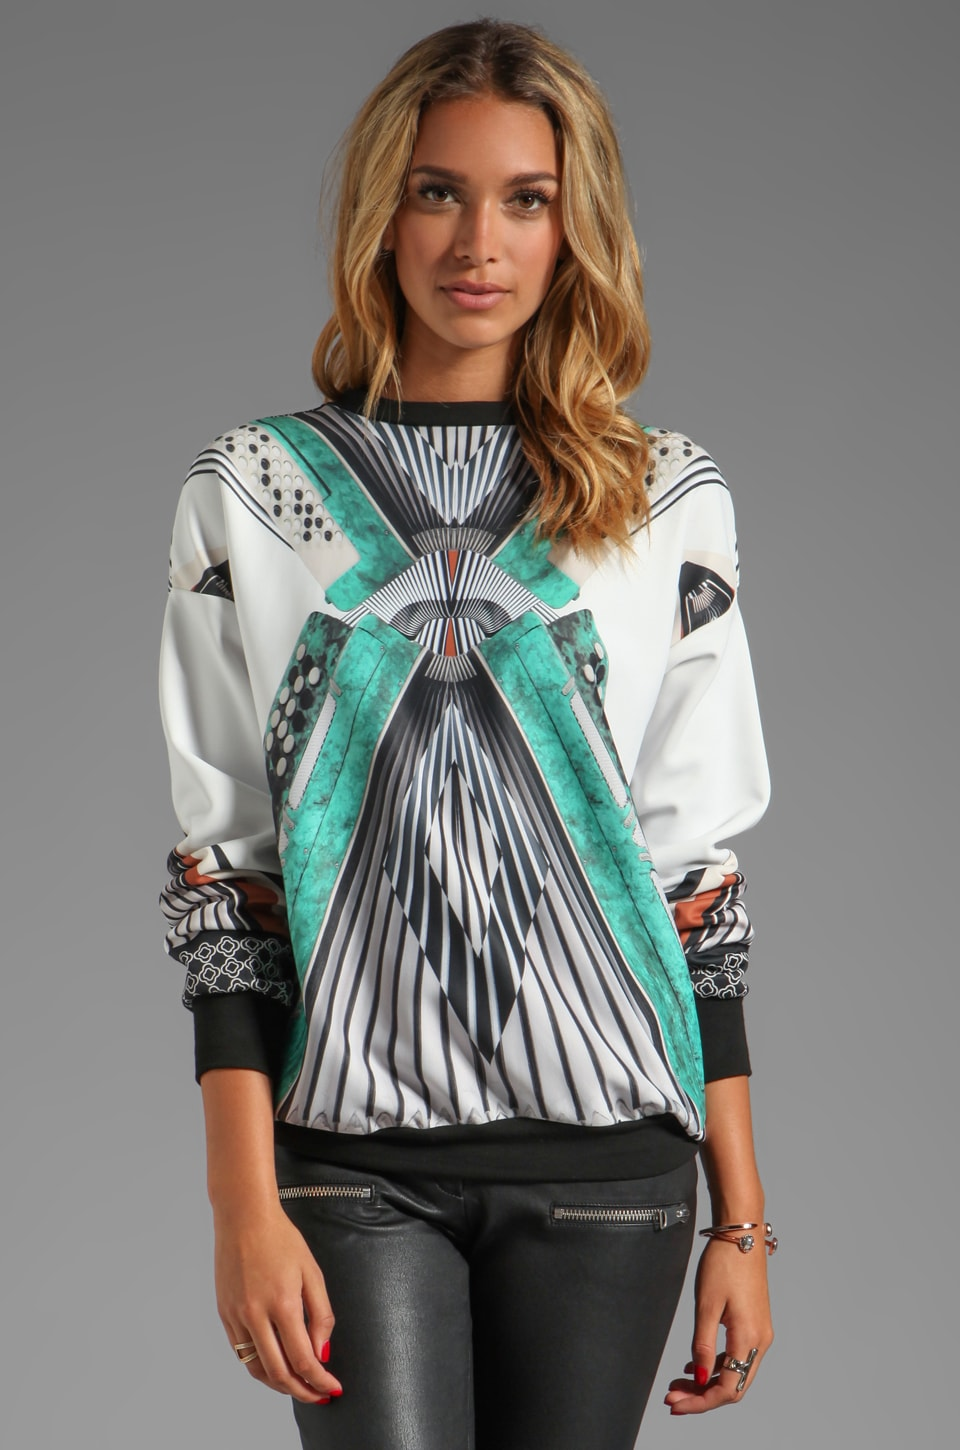 Clover Canyon Accordian Sweatshirt in White